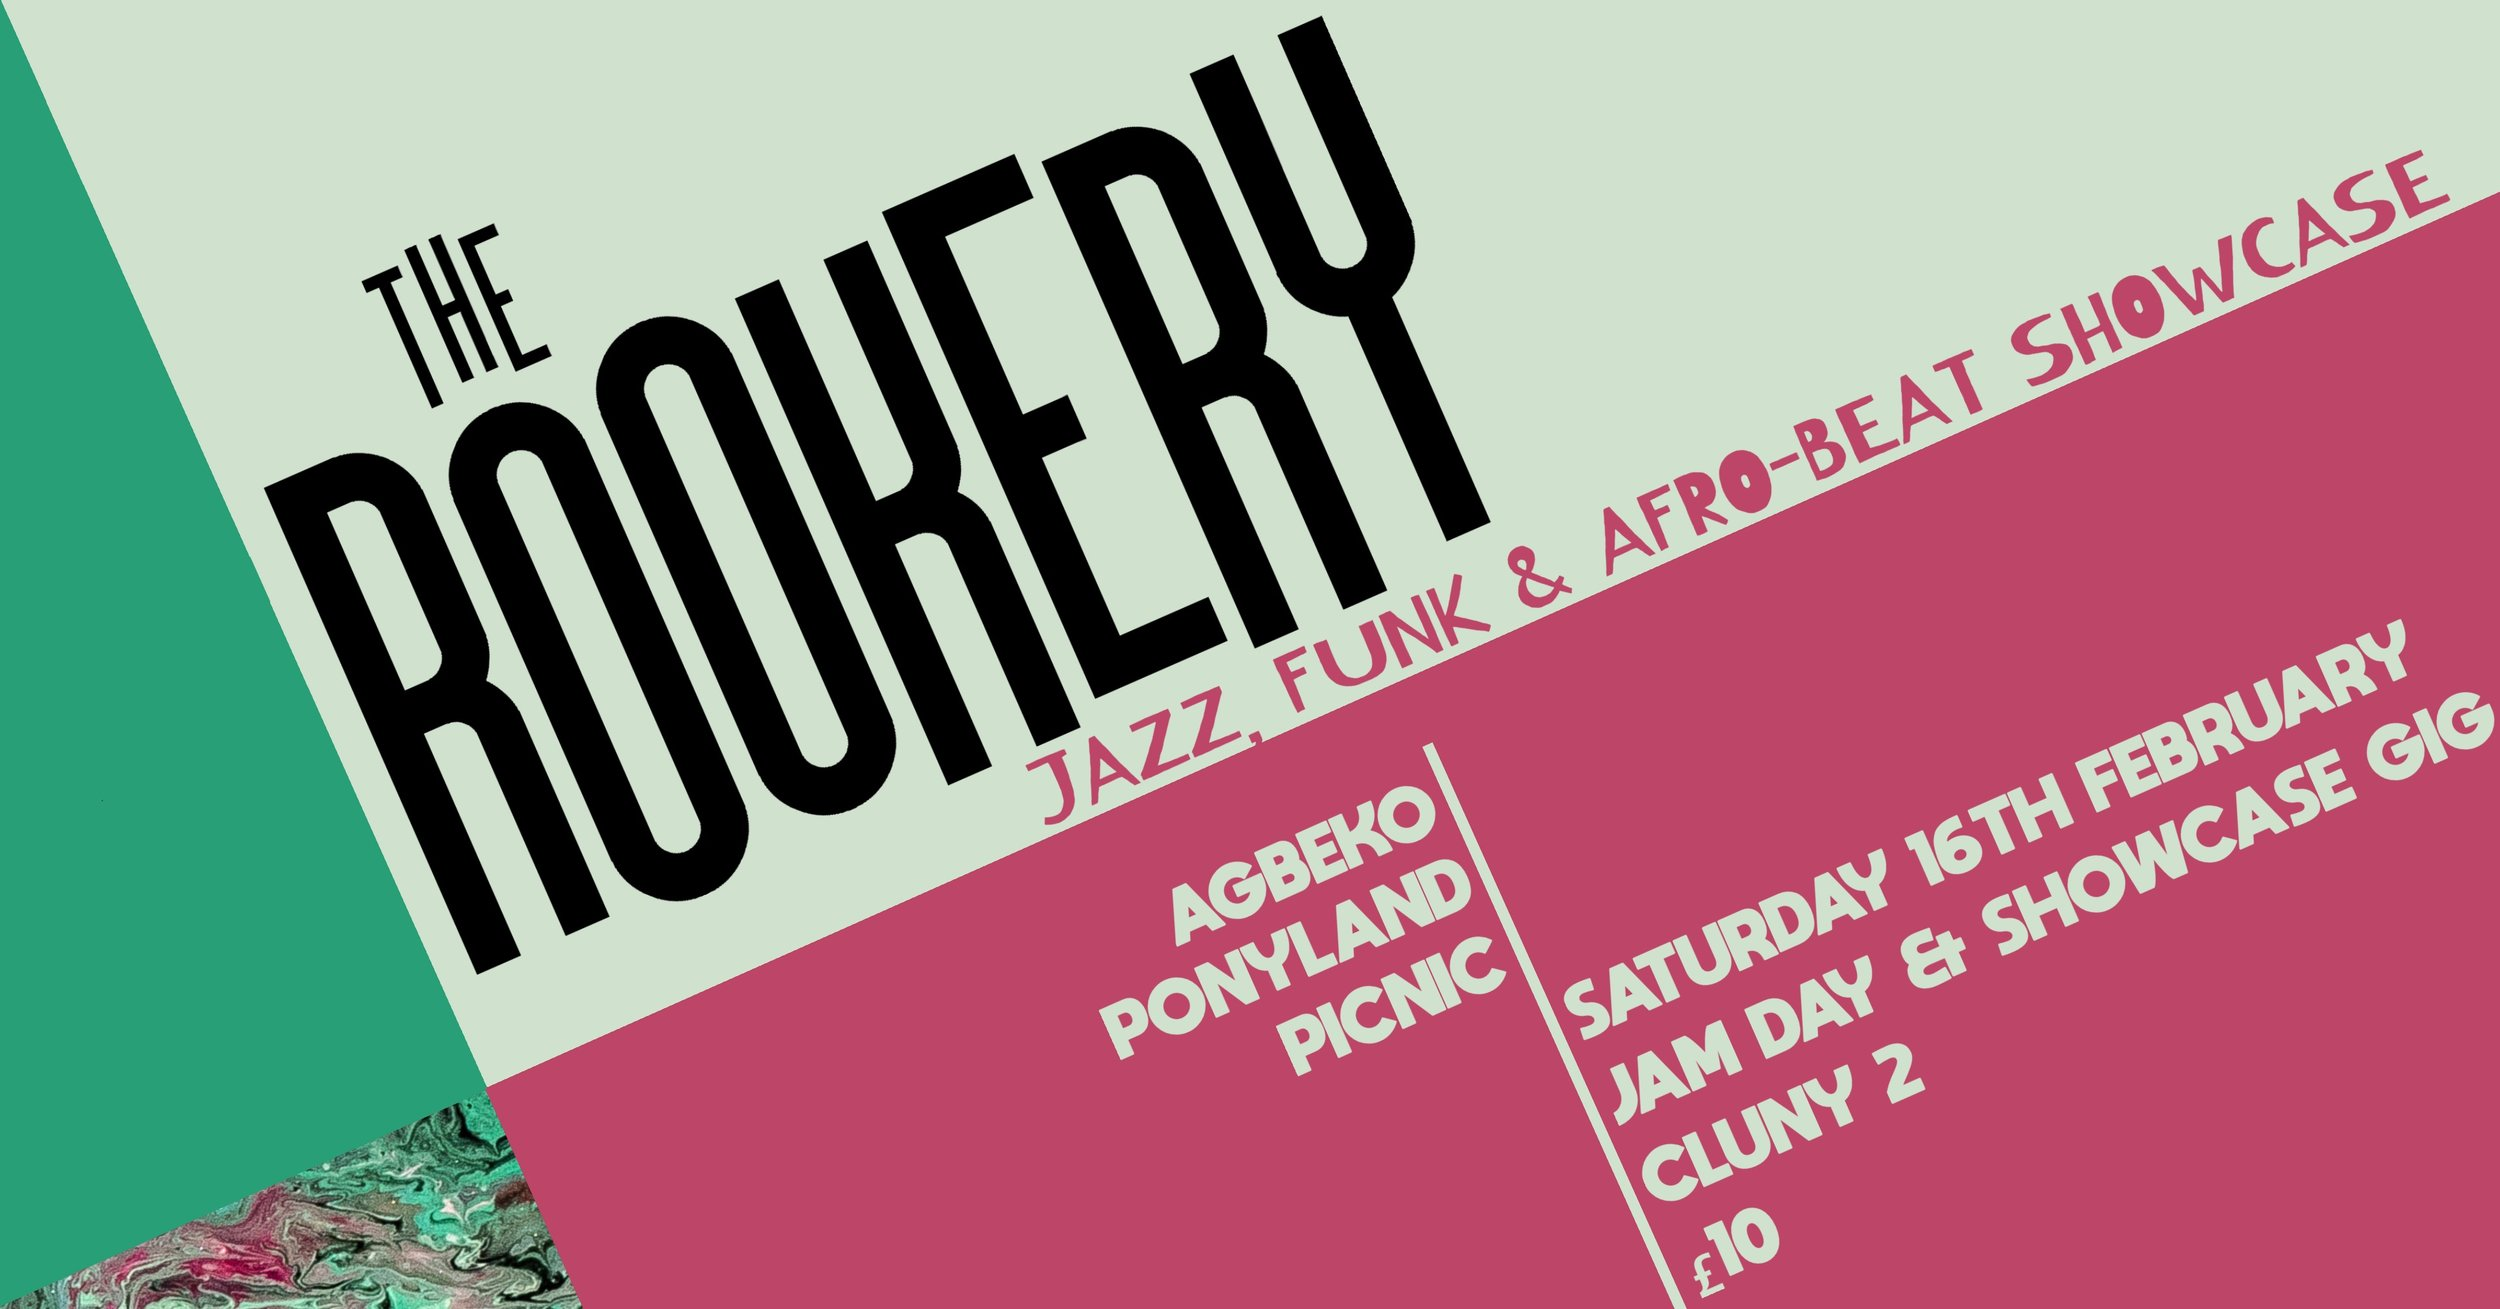 SPOTLIGHT Uk PREVIEW:THE ROOKERY JAZZ, FUNK AND AFRO-BEAT SHOWCASE -